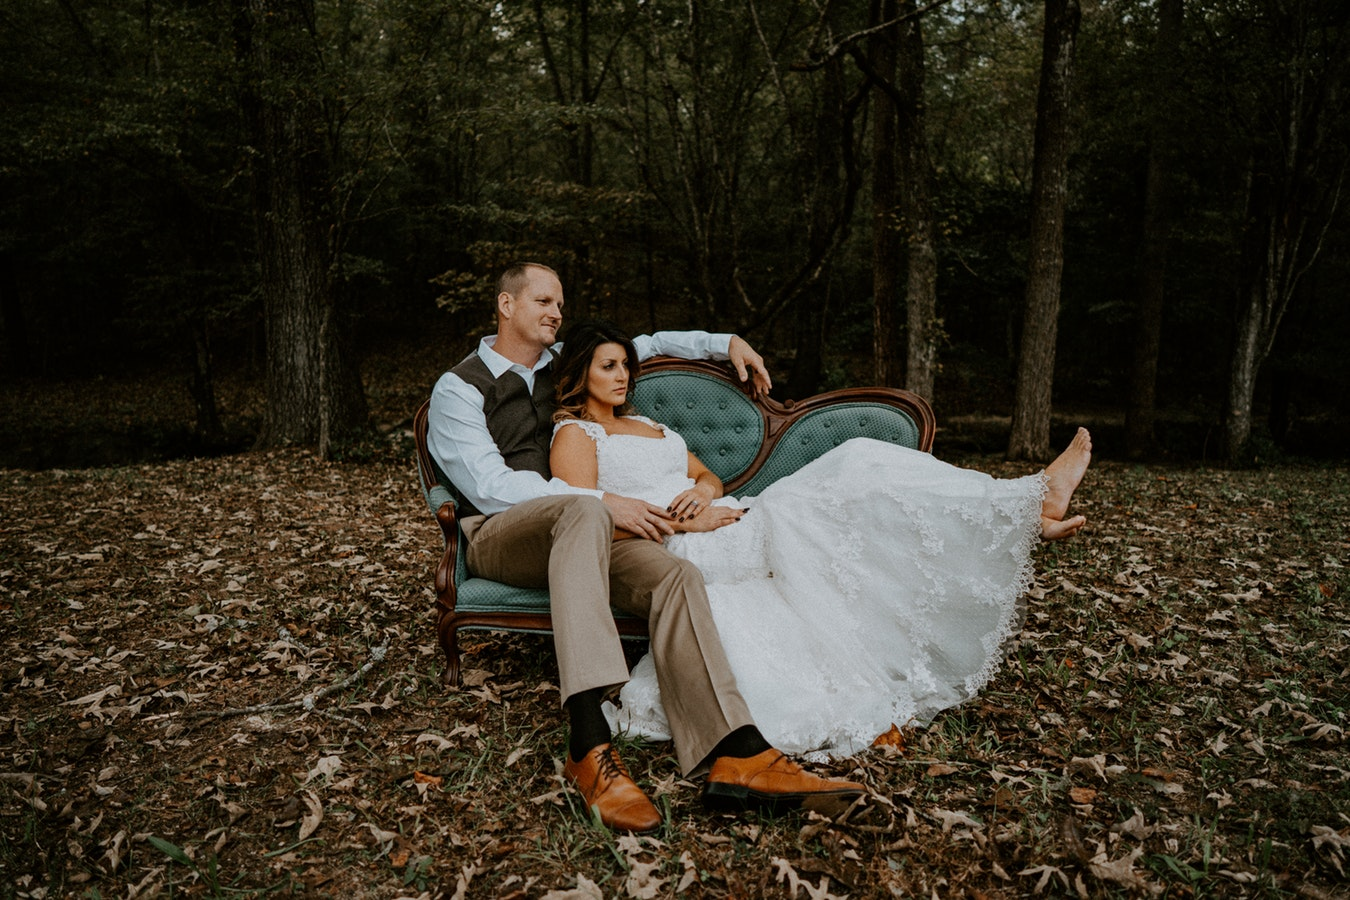 groom and bride sitting on couch in nature.